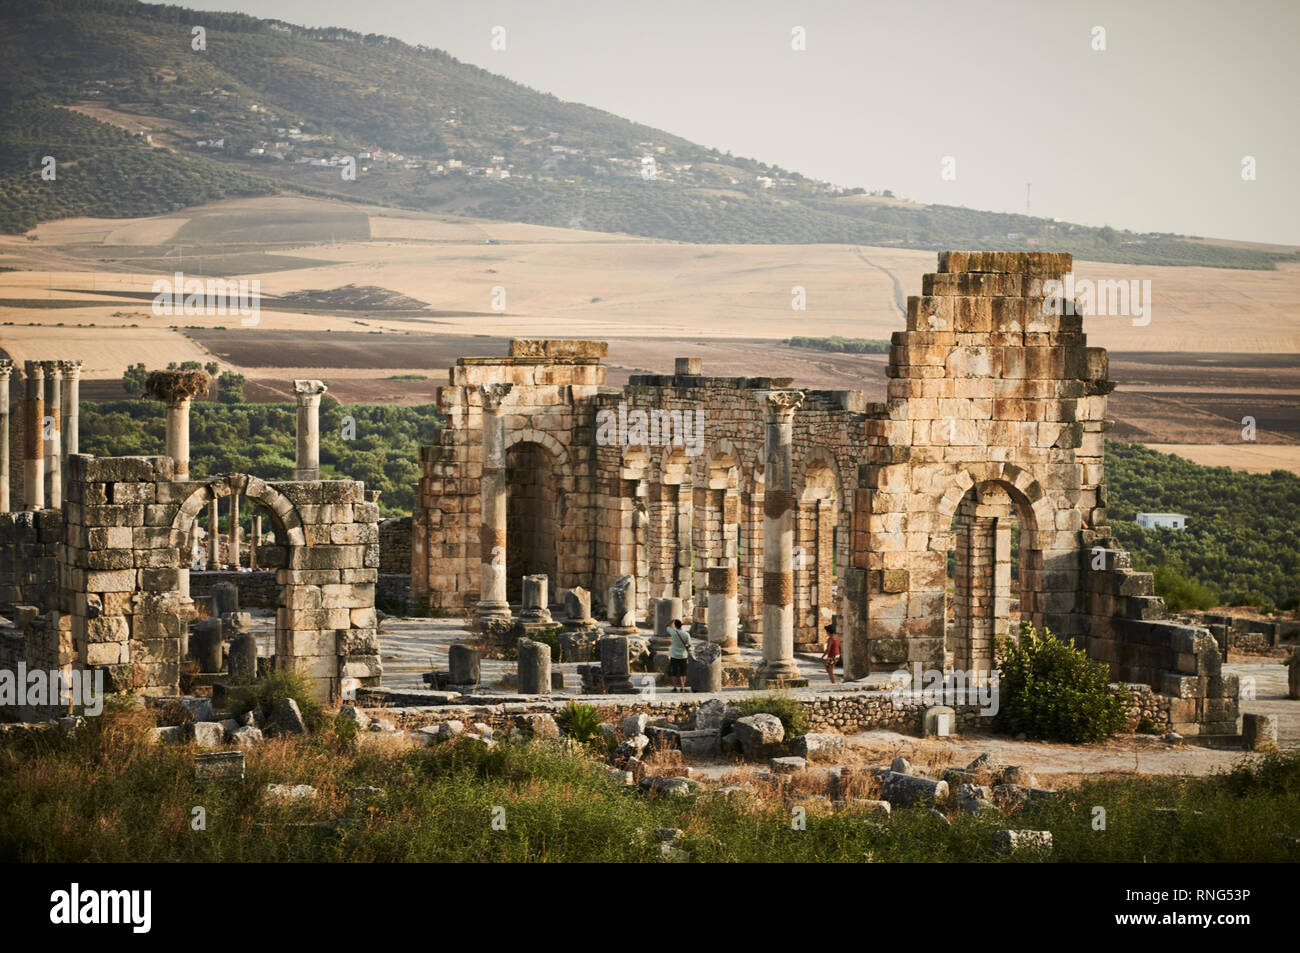 The Basilica at Volubilis is a partly excavated Berber and Roman city in Morocco near the city of Meknes, and considered the kingdom of Mauretania. Stock Photo